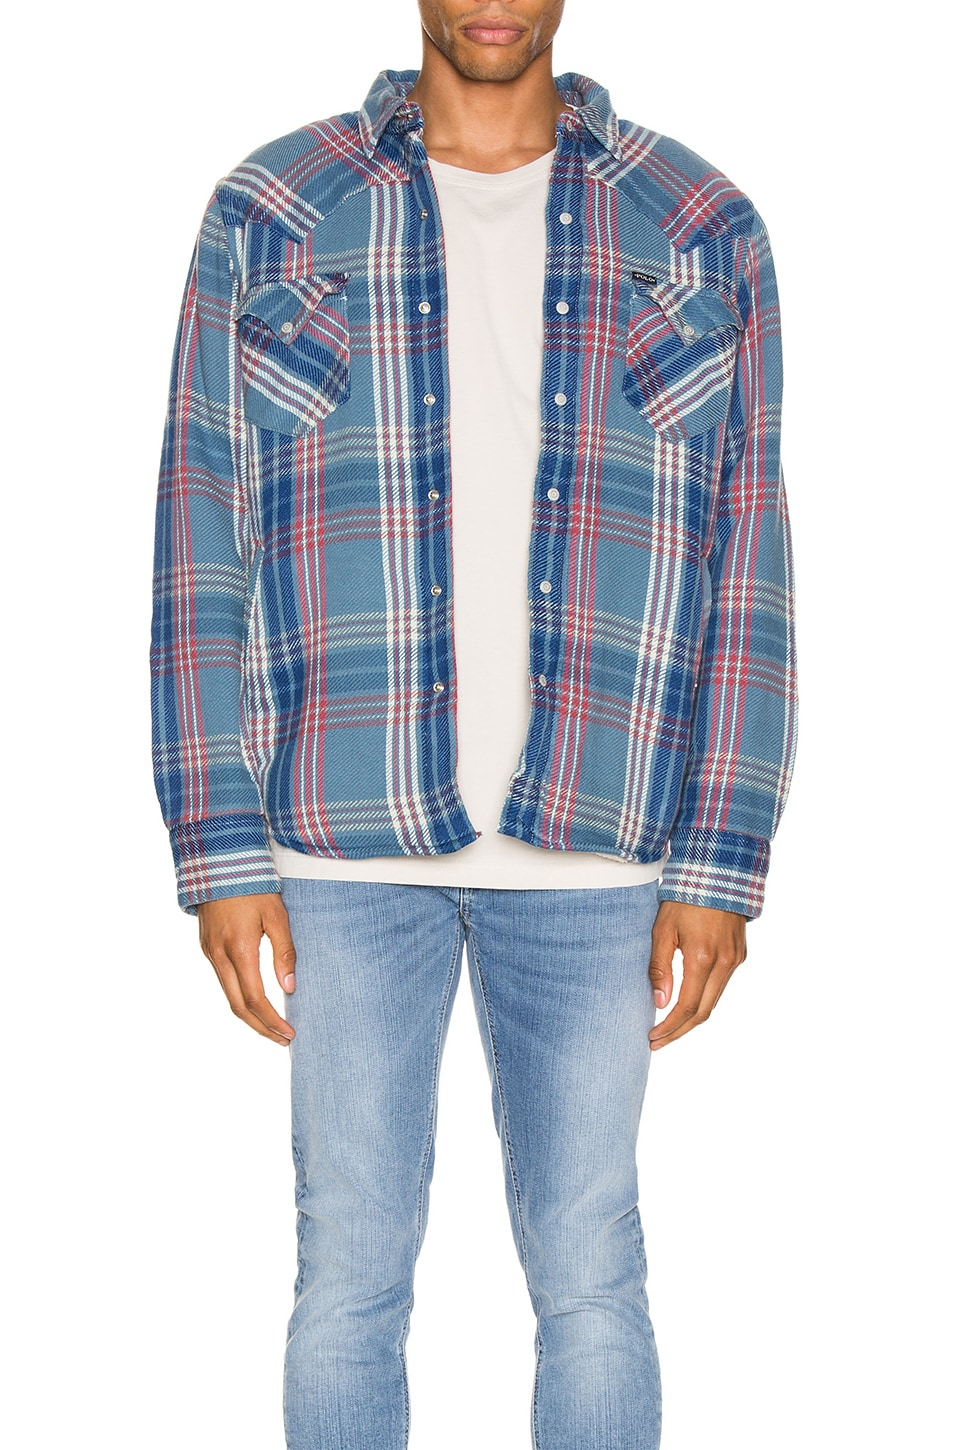 Polo Ralph Lauren Cotton Twill Long Sleeve Shirt in Azure & Red Multi